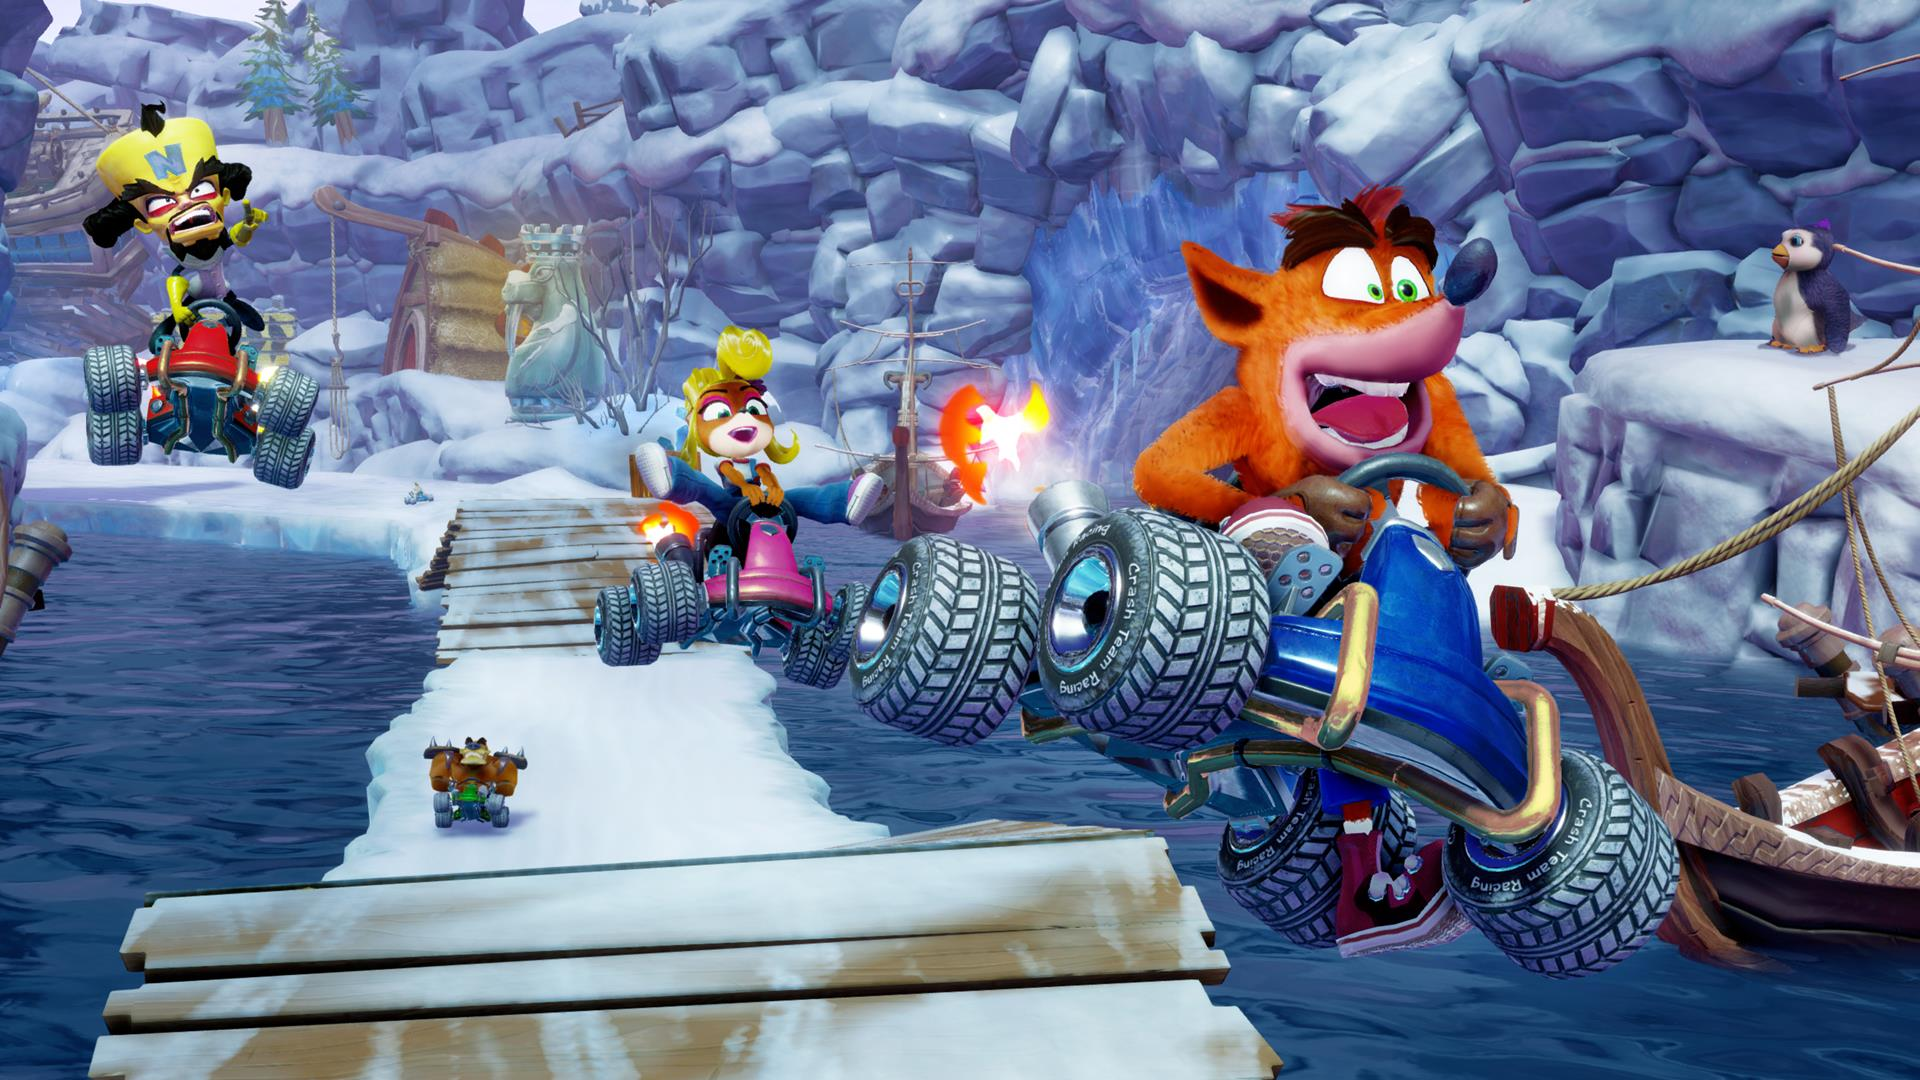 crash team racing review, Crash Team Racing Review – Fast and Furry-ious, Gadget Pilipinas, Gadget Pilipinas